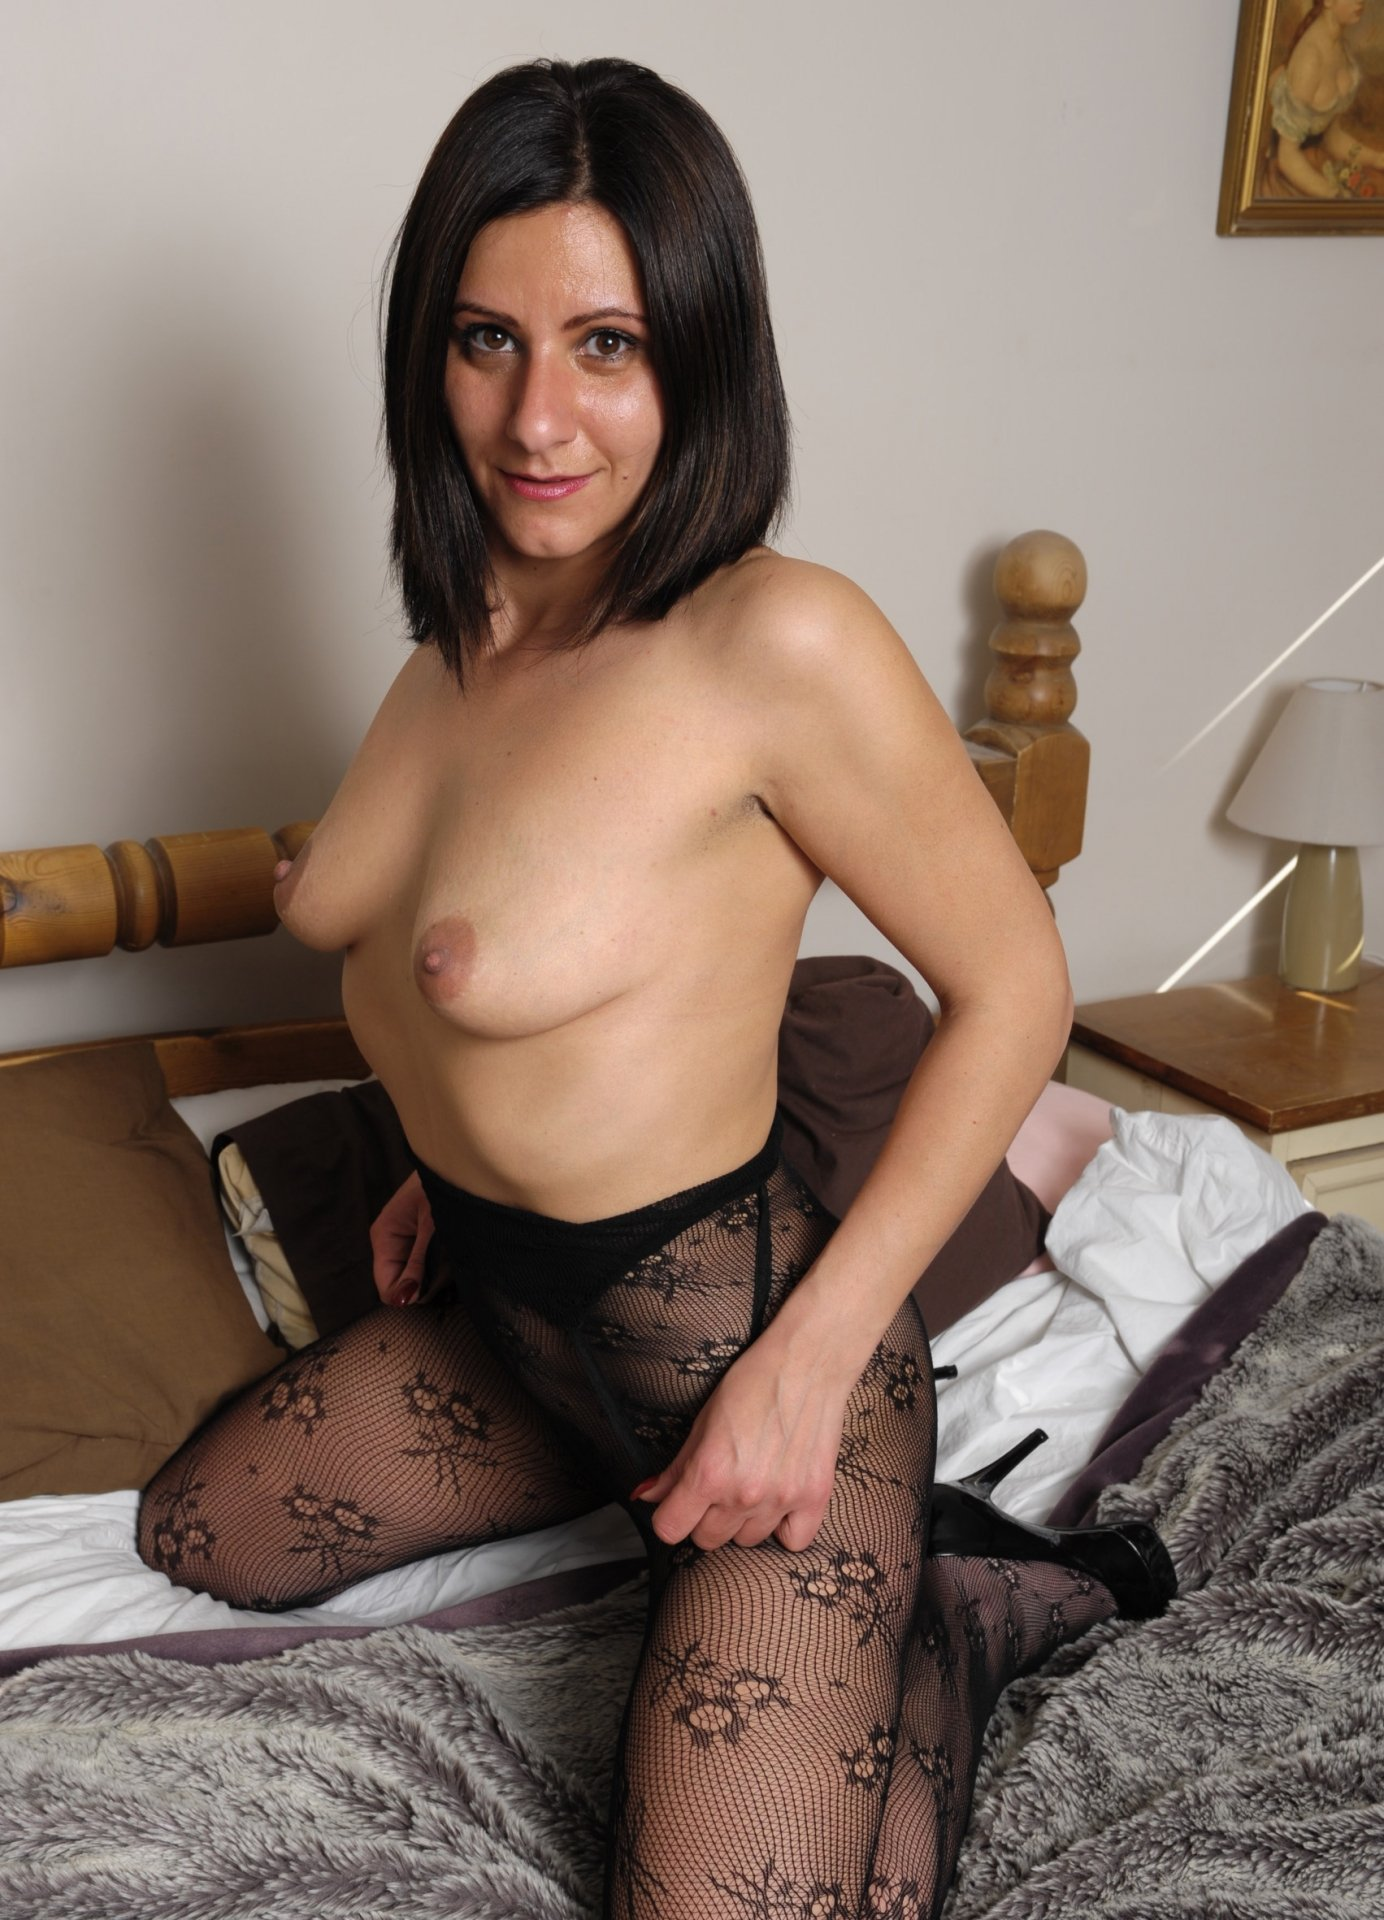 CockLover35 from East Lothian,United Kingdom